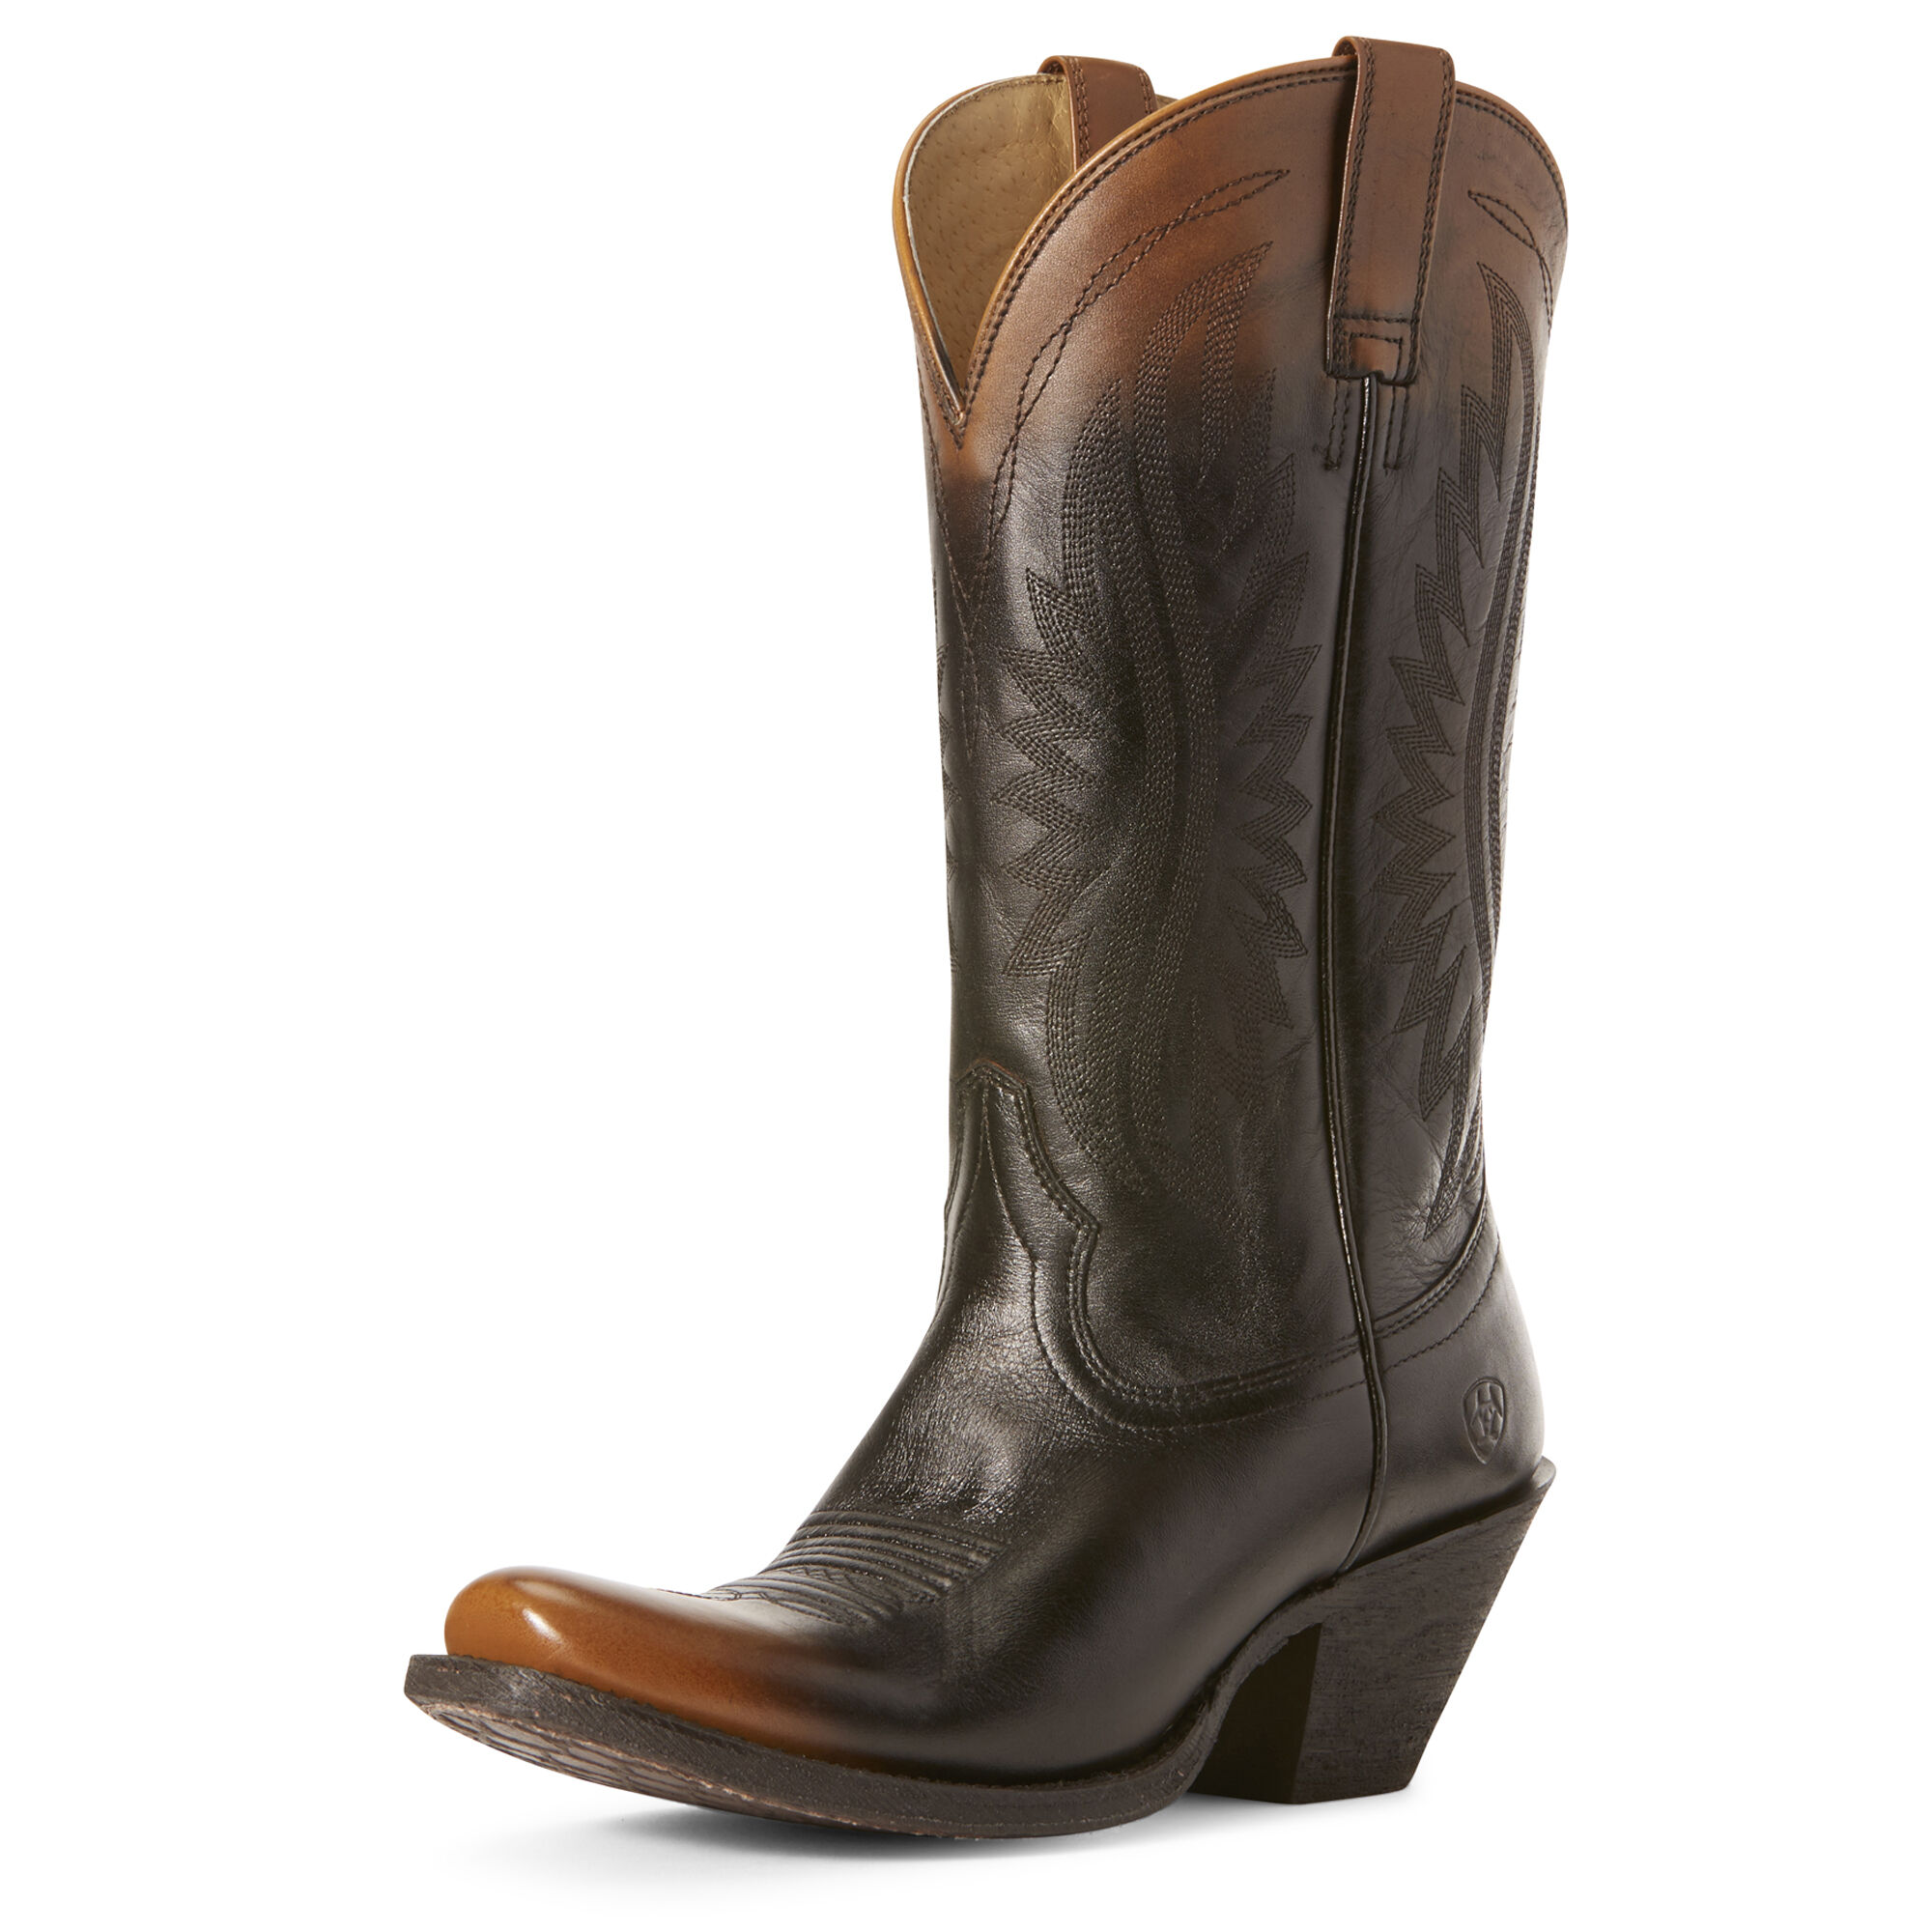 Ariat Sale \u0026 Clearance , Ariat Clothing, Apparel, and